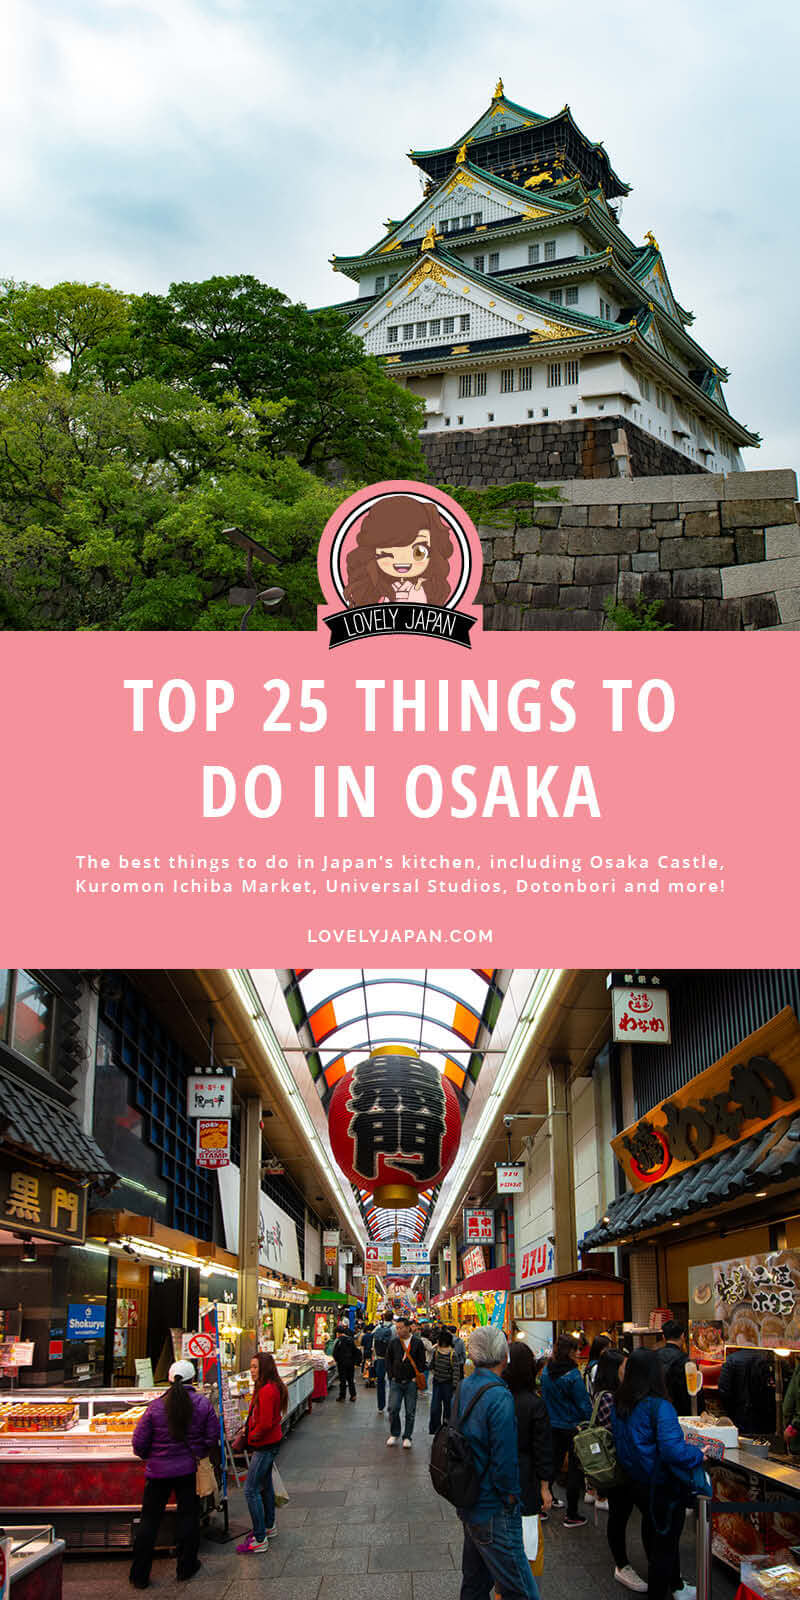 Top 25 Things to do in Osaka